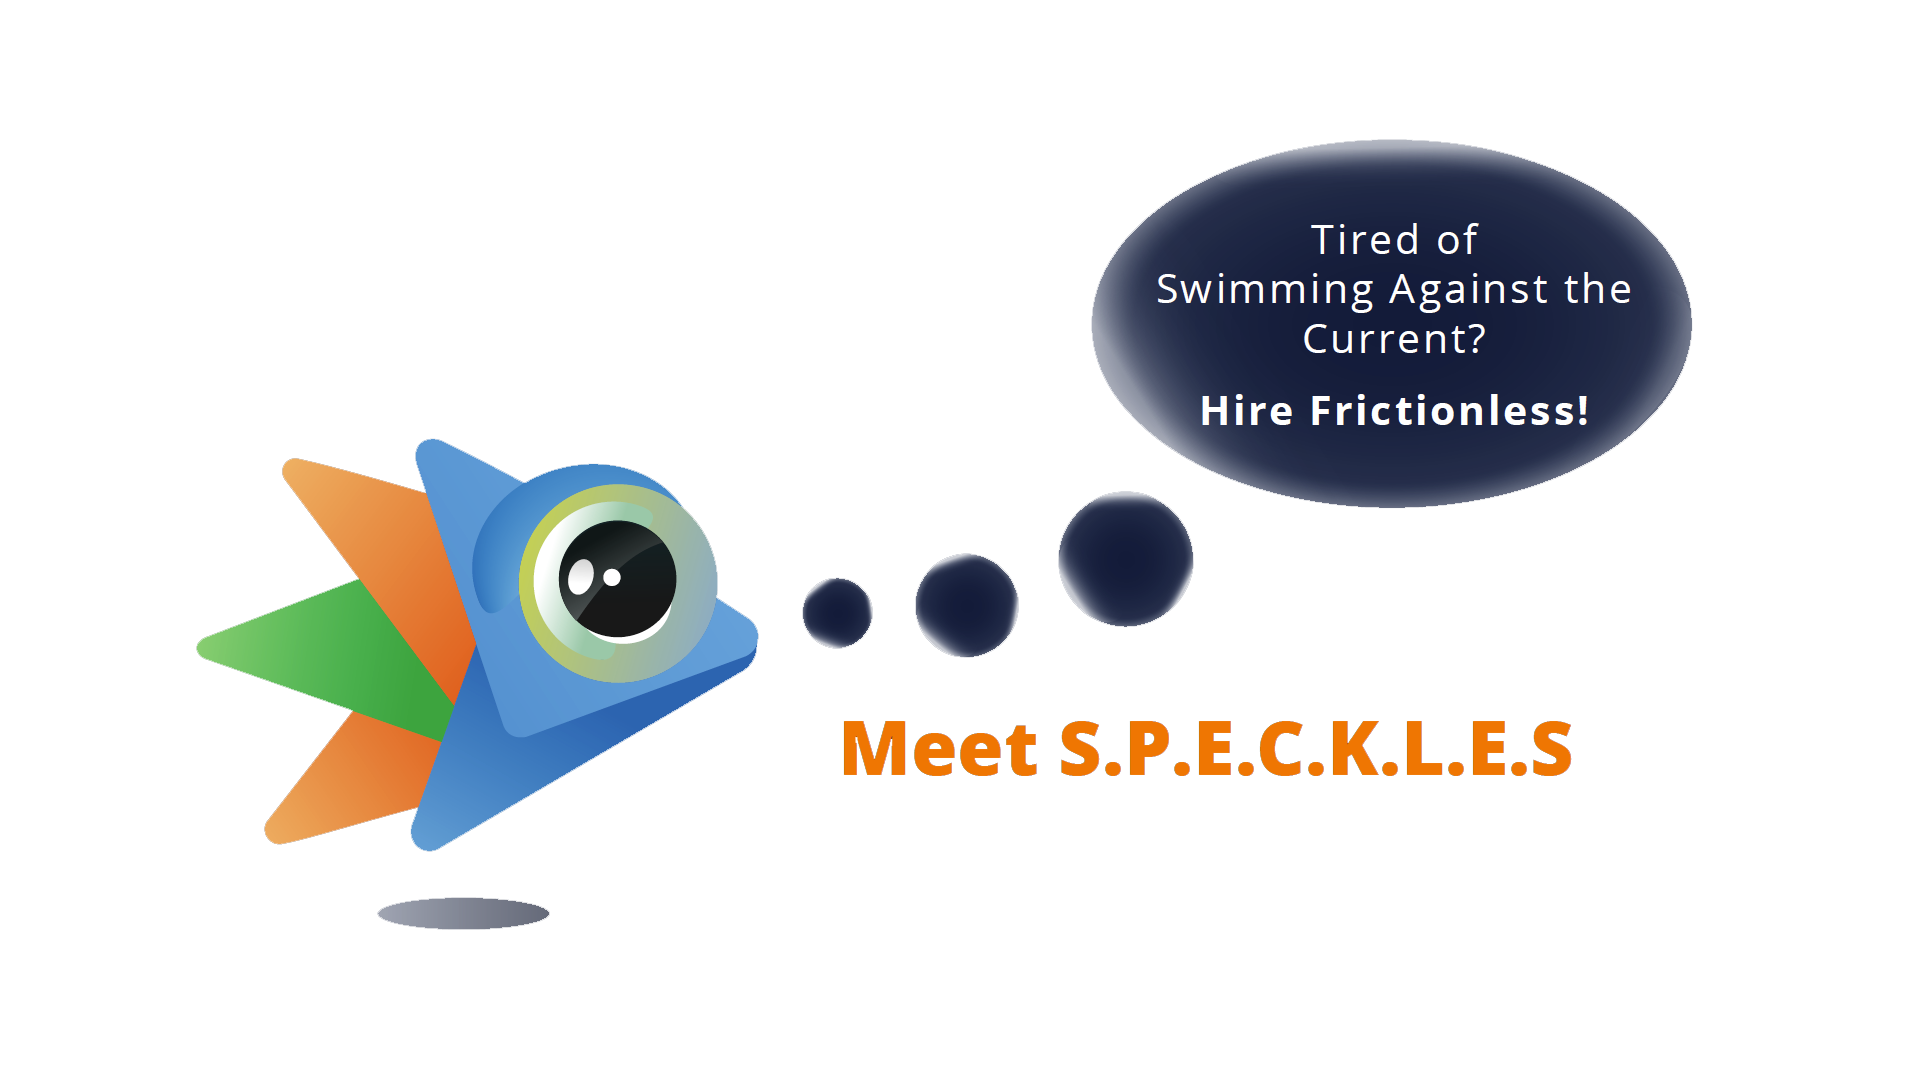 S.P.E.C.K.L.E.S., the Frictionless Solutions brand ambassador.